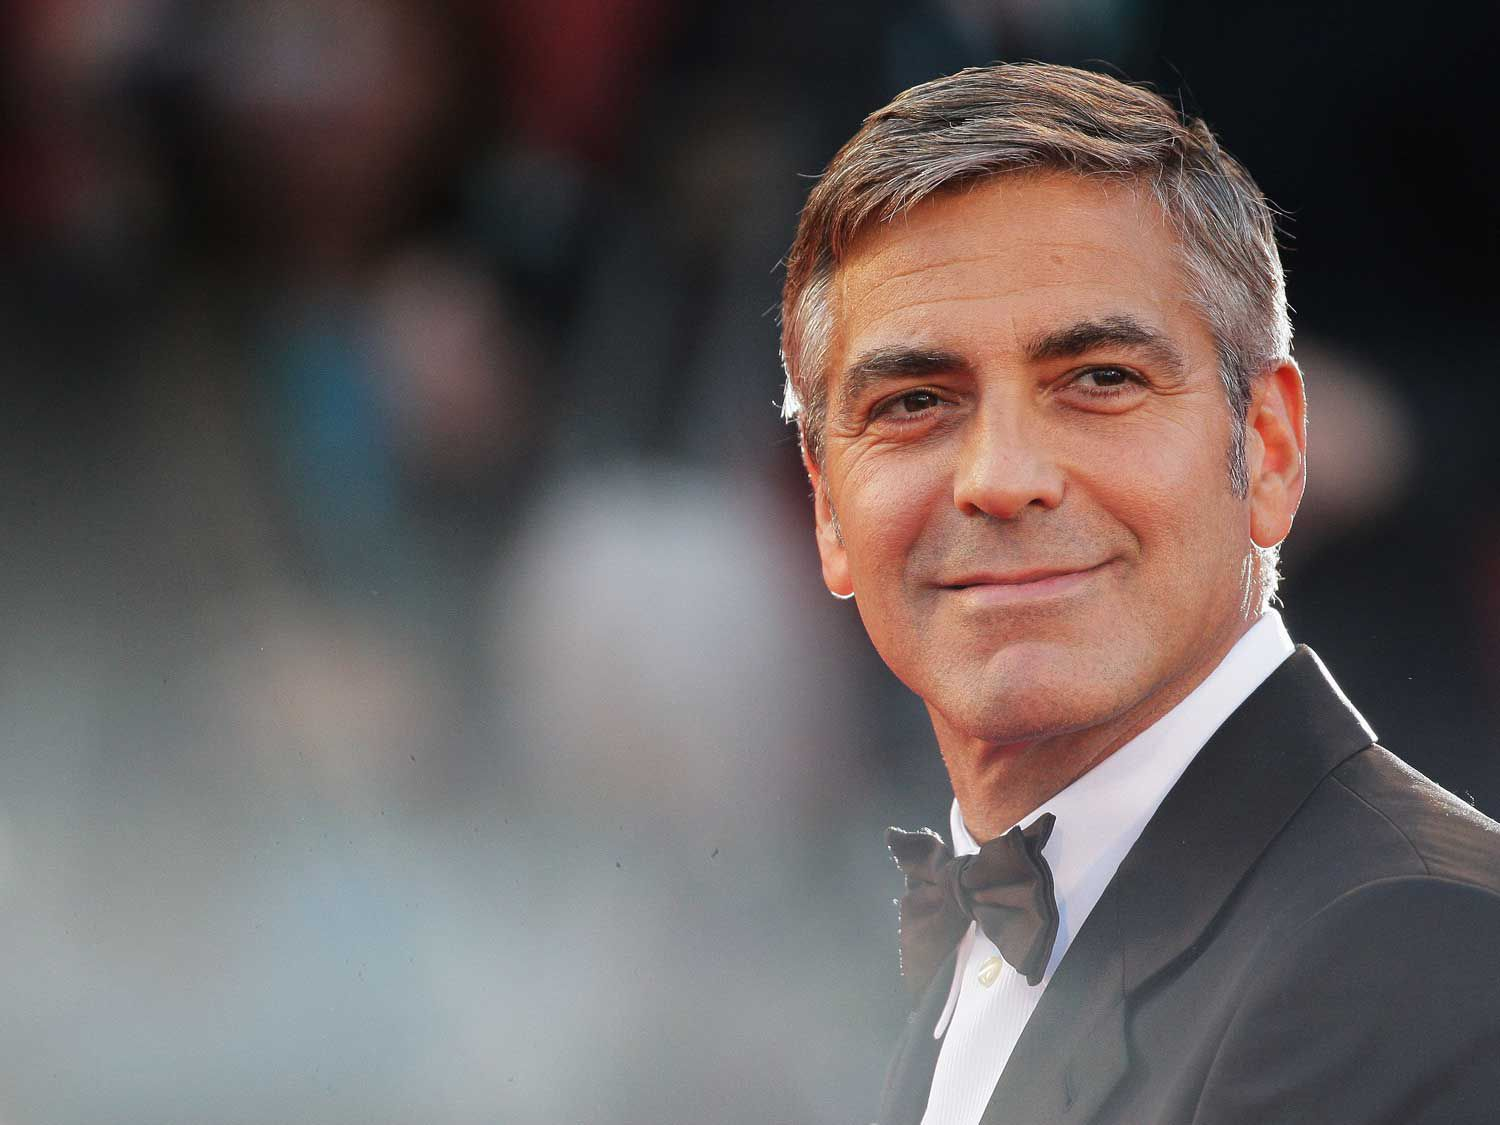 """<strong>Actors George Clooney and Woody Harrelson:</strong> In 2010, George Clooney and Woody Harrelson were spotted taking a ride around Lake Como. However, in 2018, Clooney experienced a near-fatal motorcycle accident in Italy after which, according to an interview with The Hollywood Reporter, he says that """"I can let go of motorcycle riding for a little while."""""""